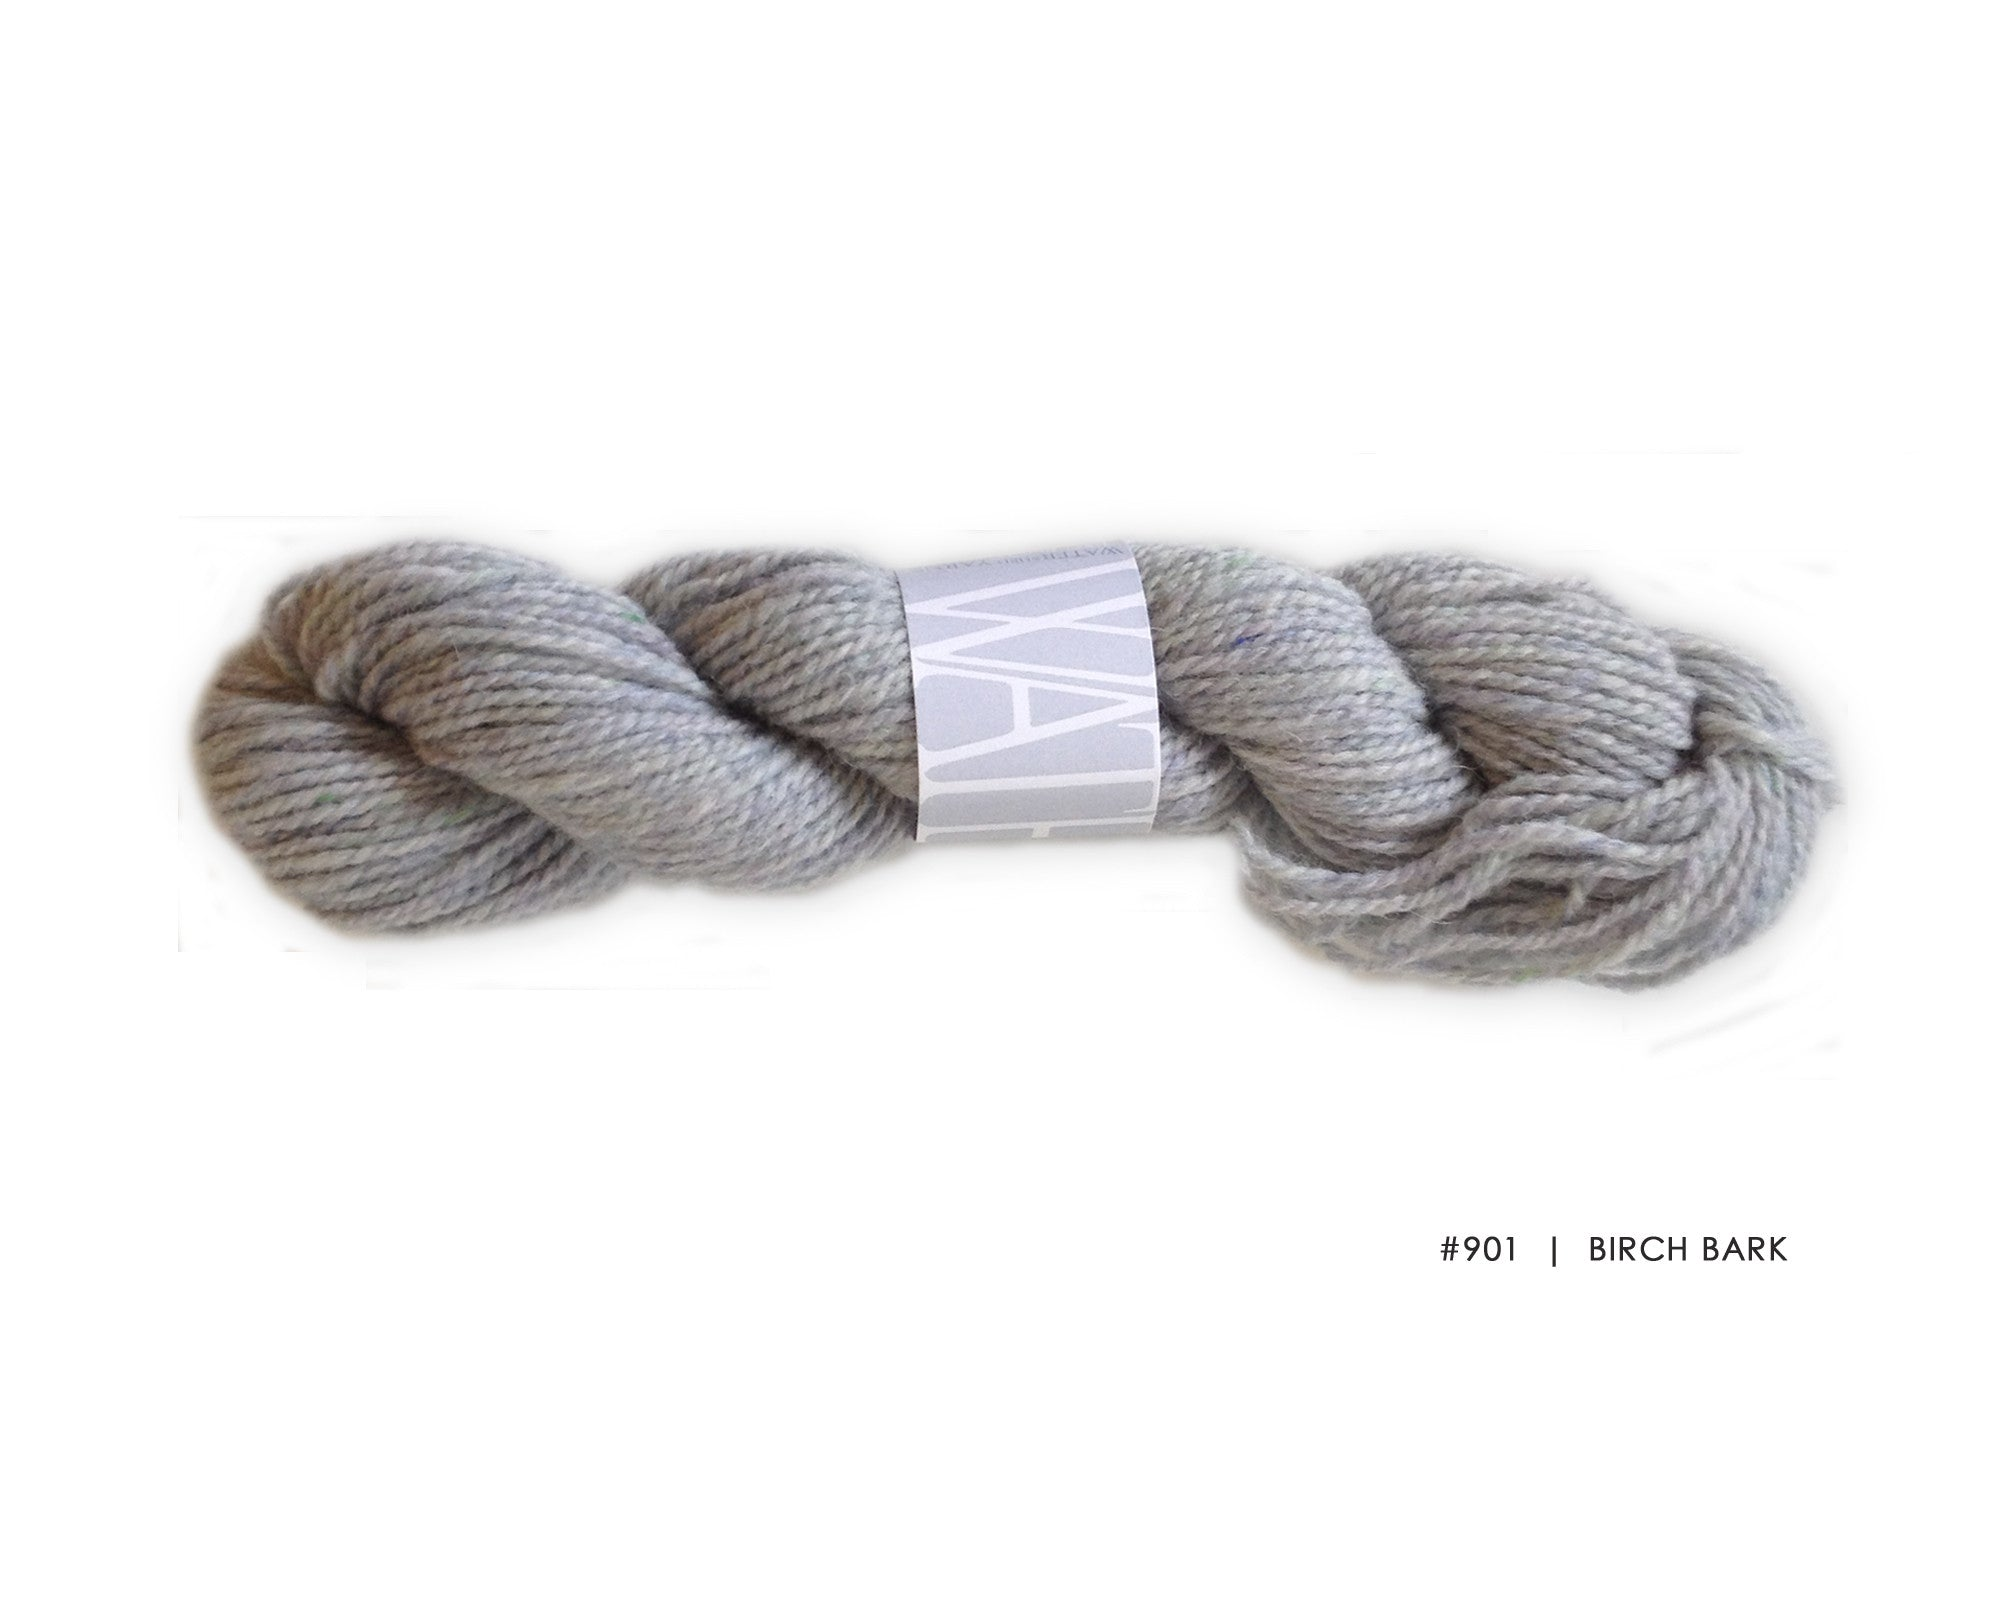 Watershed yarn from Harrisville Designs, worsted weight 100% wool. Soft spun, super heathered, super cushy! Birch Bark